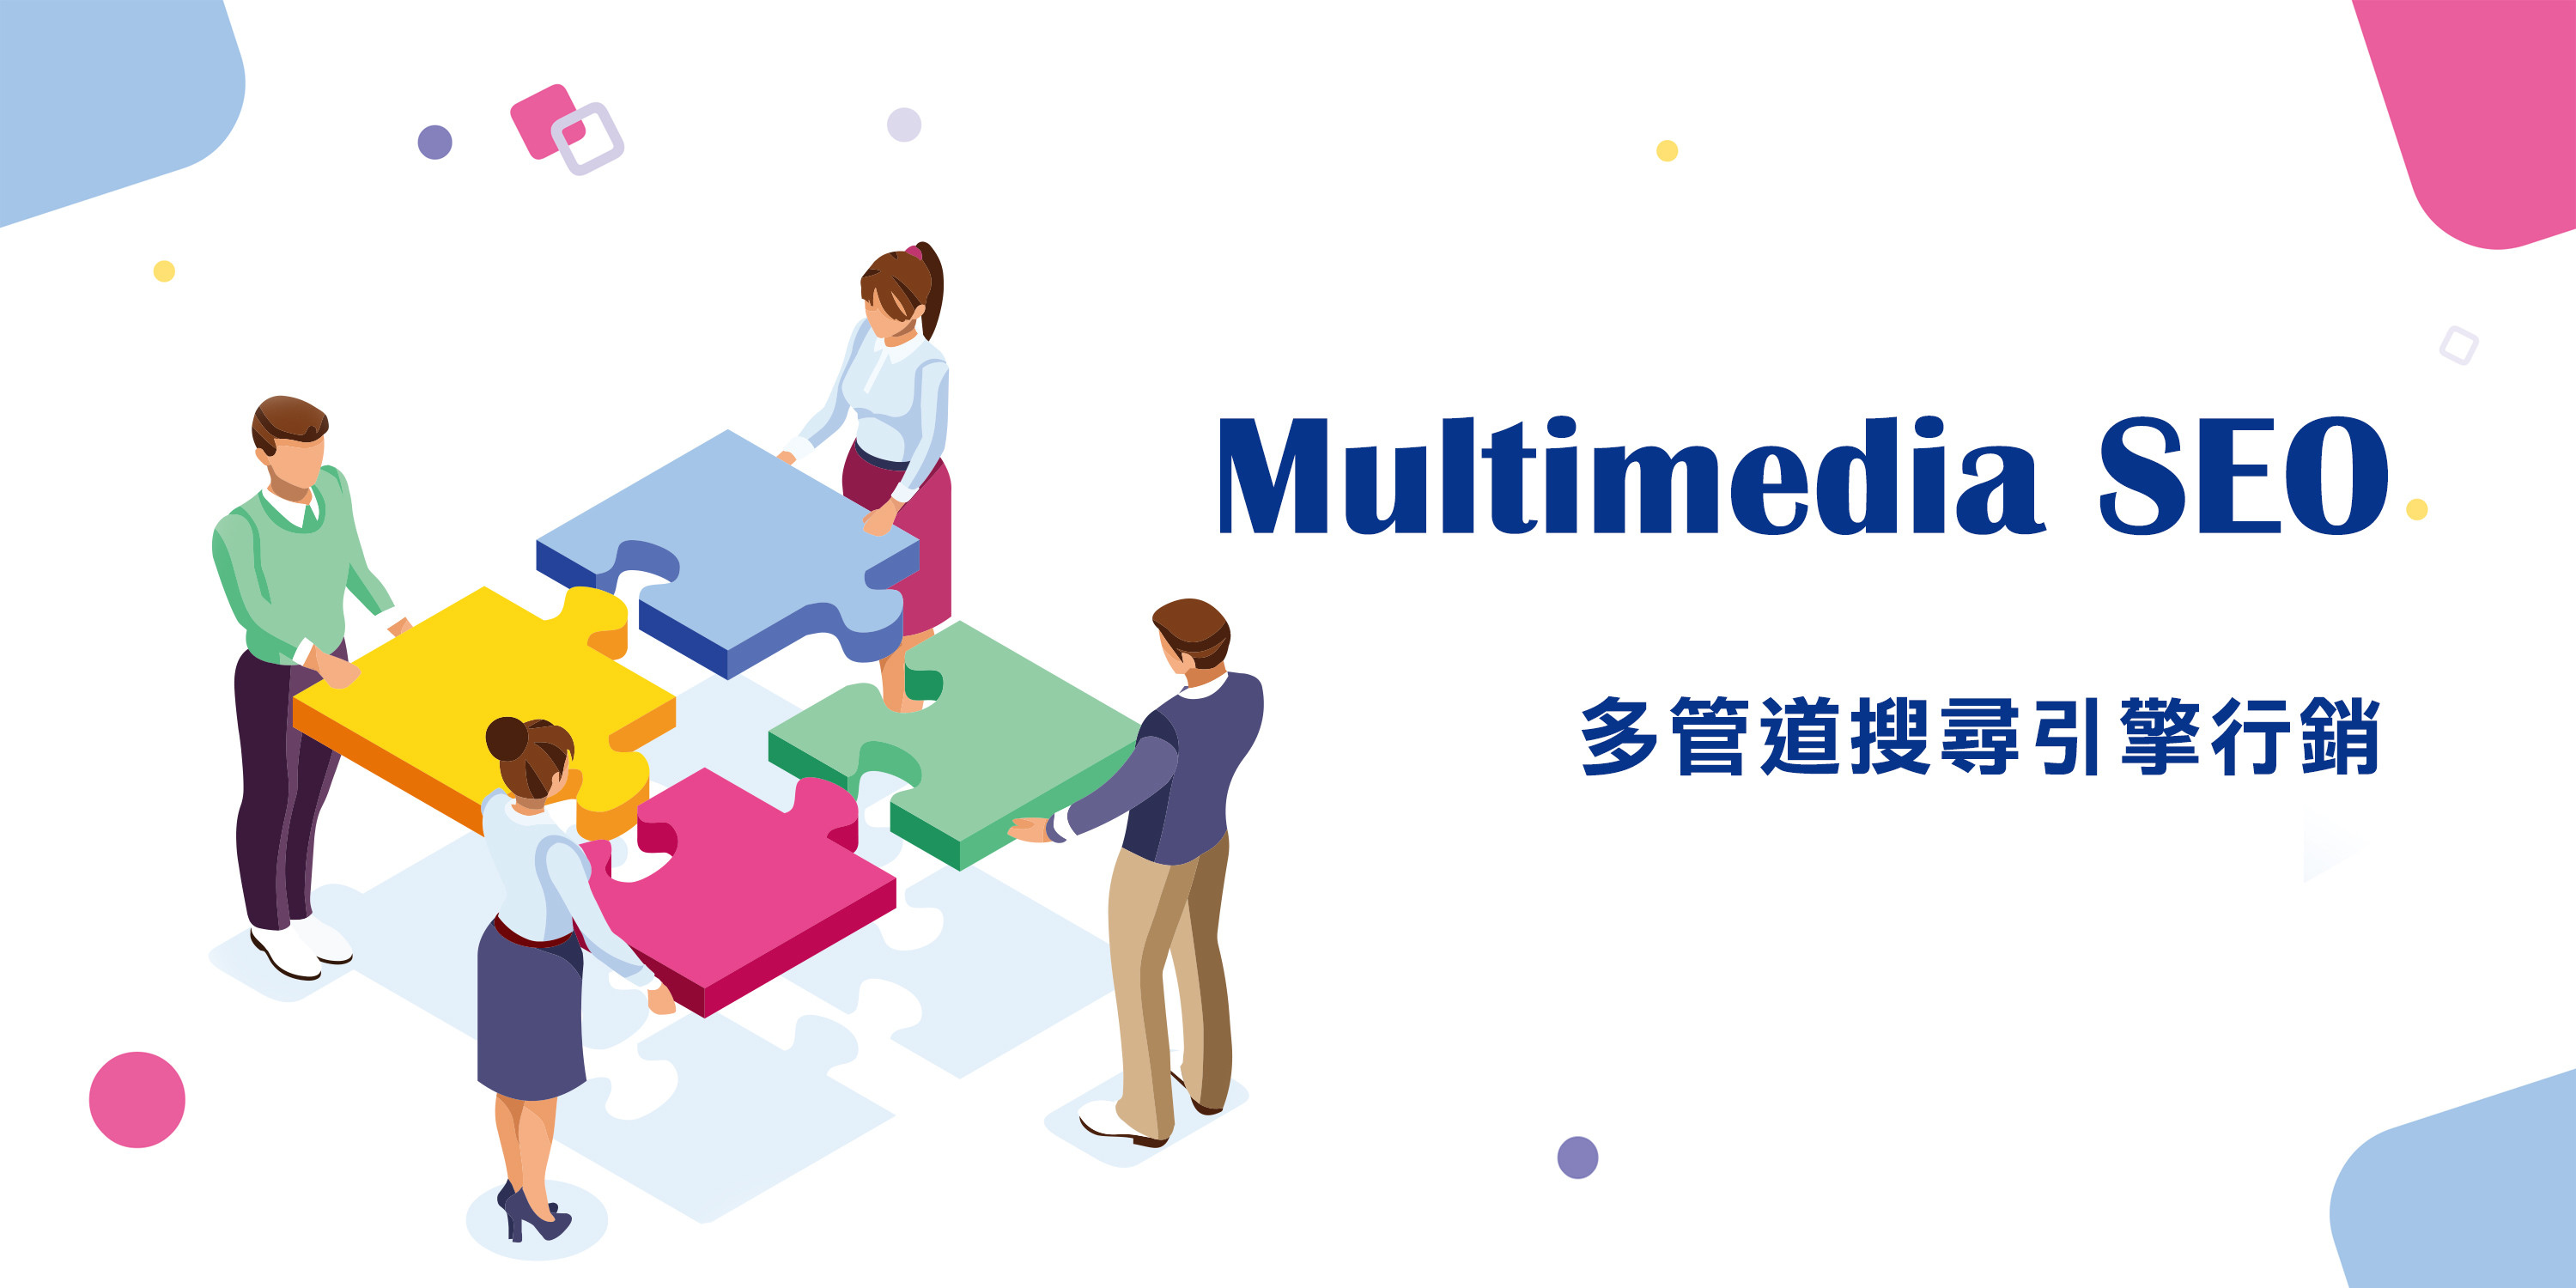 Multimedia SEO多管道優化-鯊客科技SEO優化公司